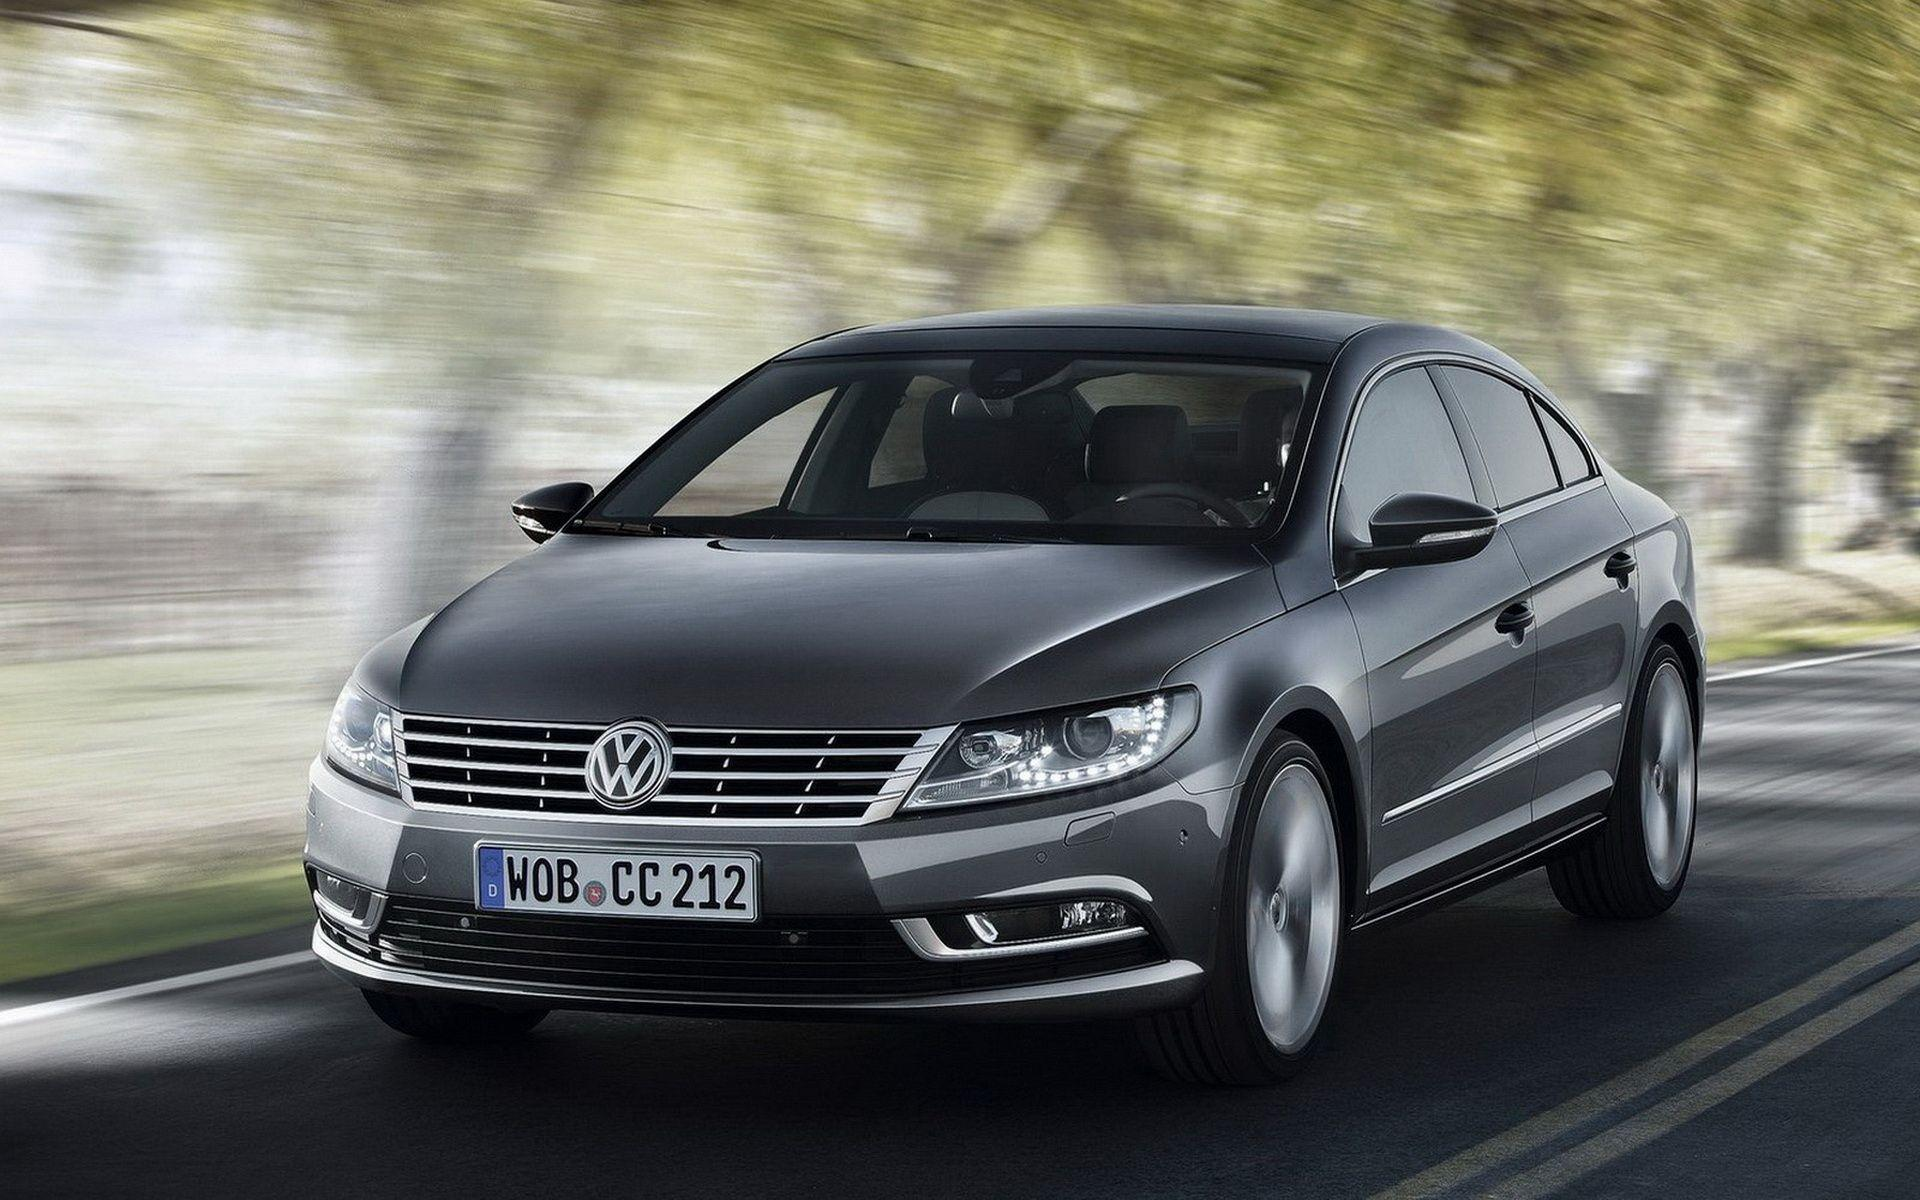 Volkswagen-Passat CC in motion wallpapers and images - wallpapers ...